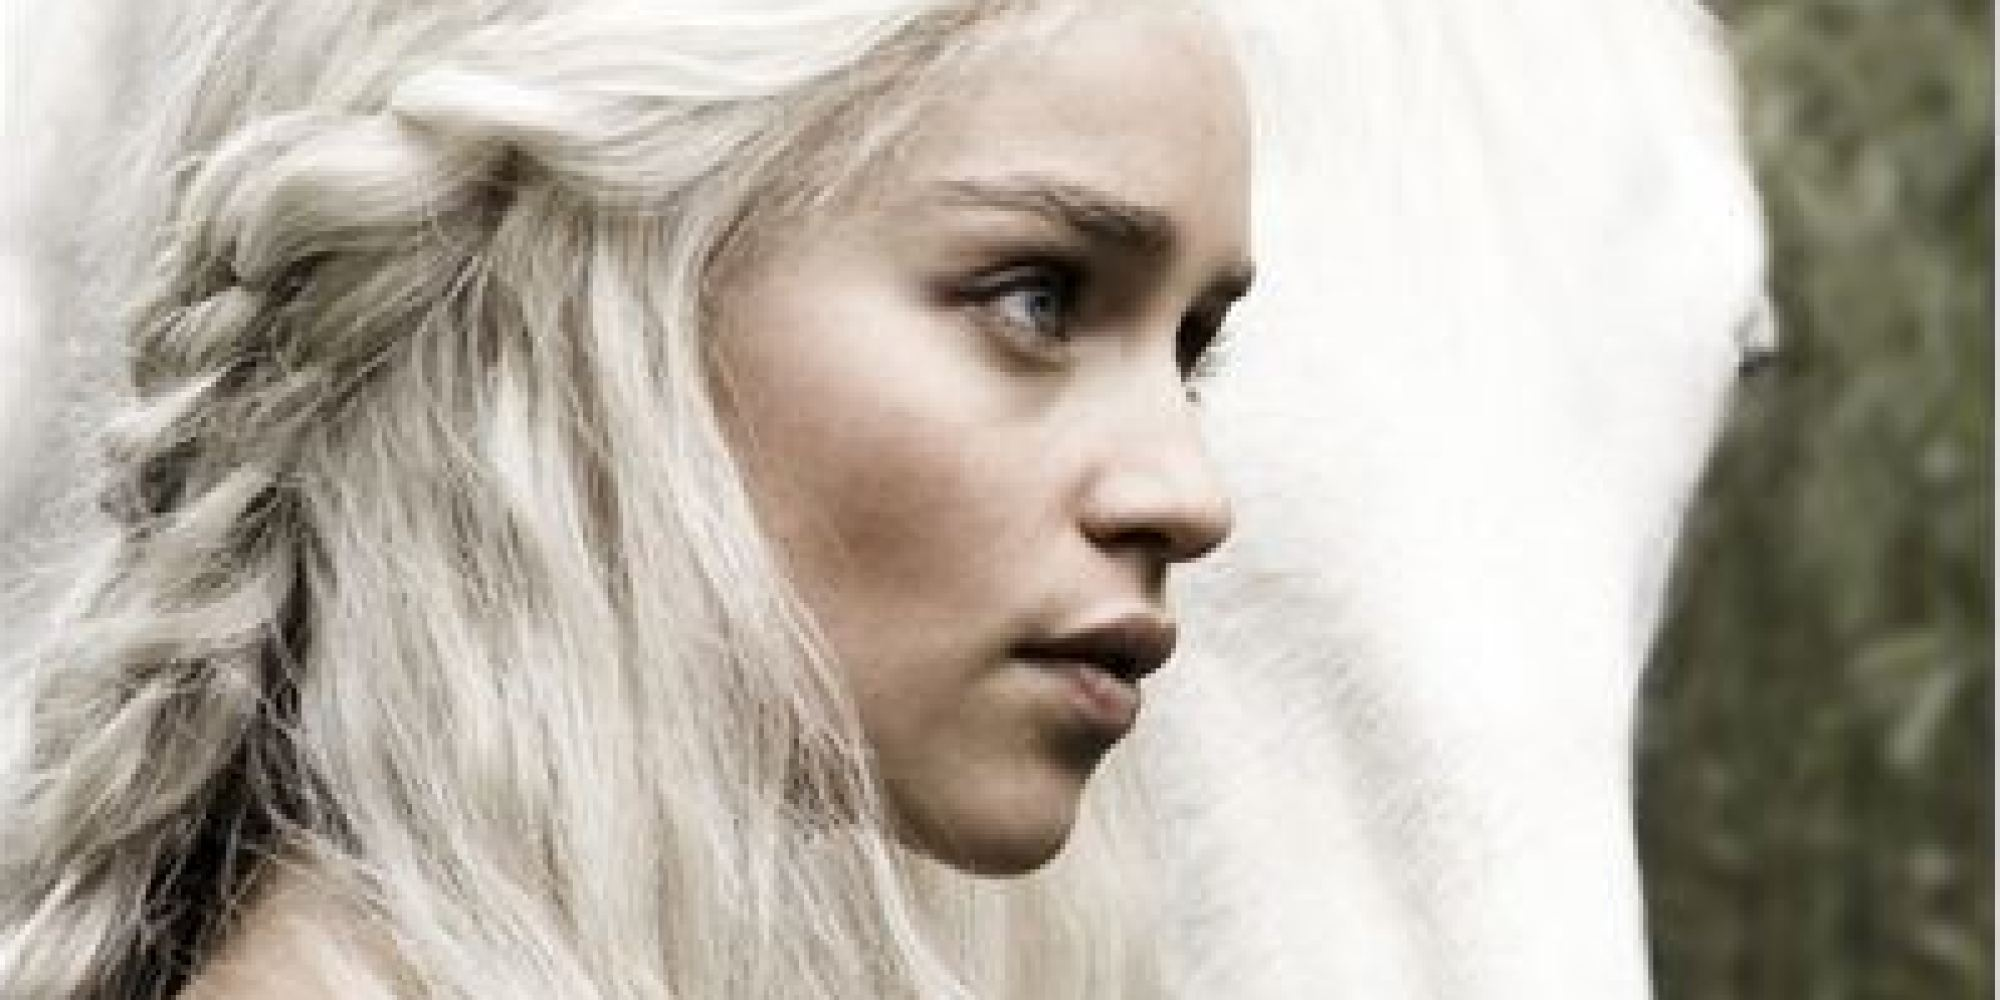 emilia-clarke-khaleesi-game-of-throne